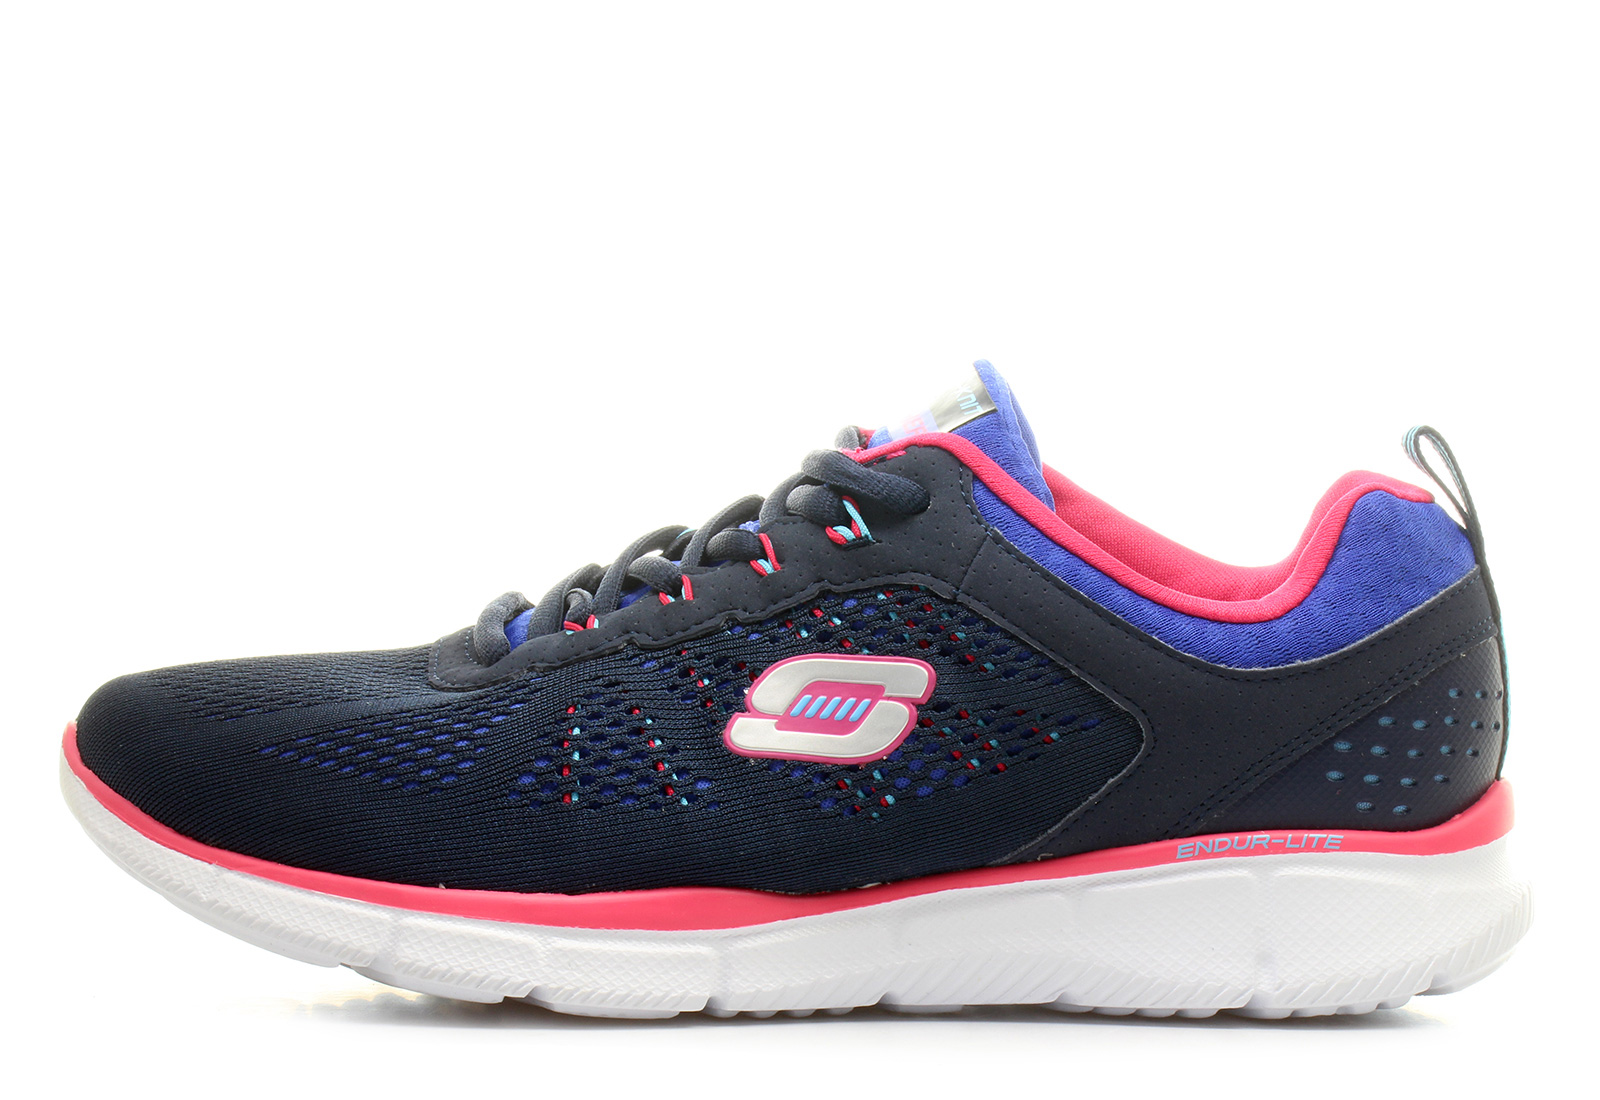 Skechers Women's Shoes: loweredlate.ml - Your Online Women's Shoes Store! Get 5% in rewards with Club O!